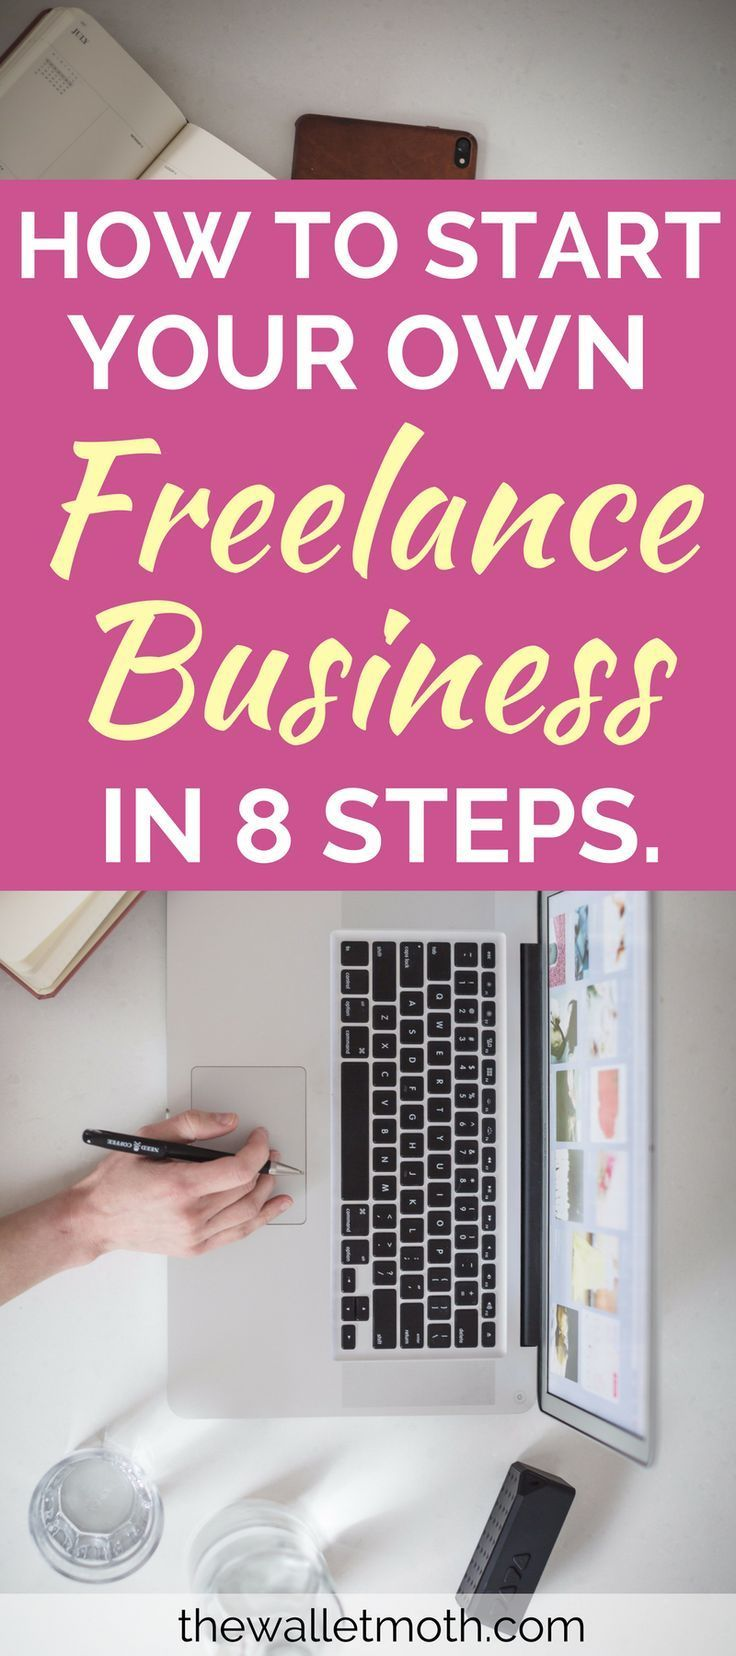 The Ultimate Guide To Starting A Freelance Business - Untraditional Office -  How to start your own freelance business. A complete beginner's guide to freelancing, and how to  - #Business #Freelance #Guide #office #ownbusiness #ownbusinessideas #ownit #ownitquotes #ownyourshit #Starting #Ultimate #Untraditional